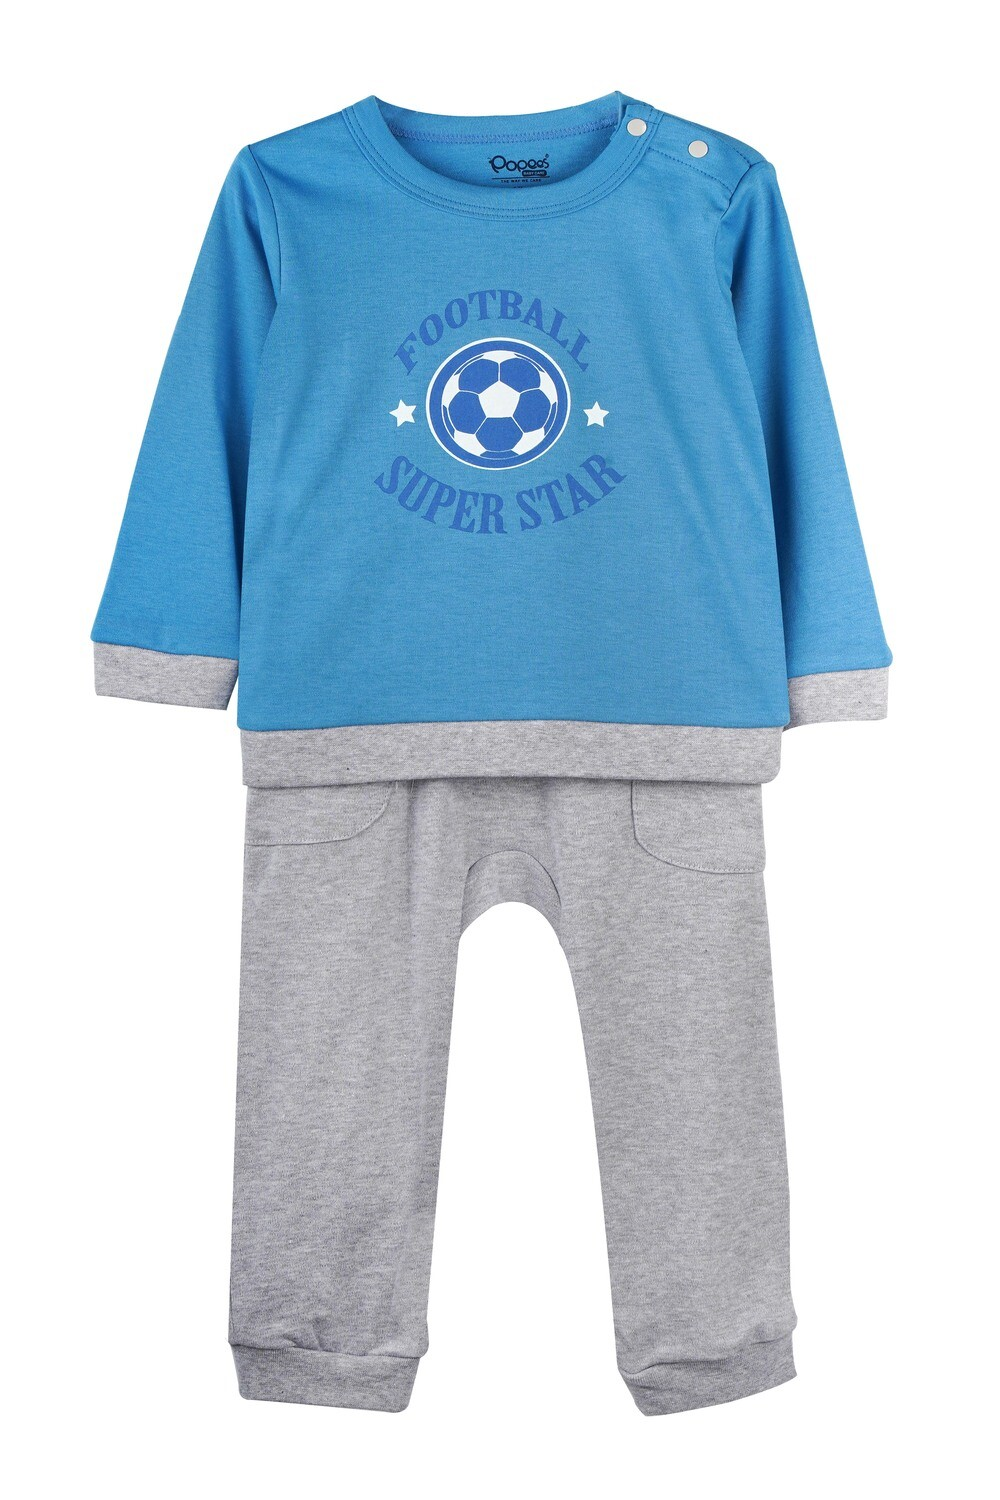 KIRTON PERSIAN BLUE Full Sleeve Shoulder Open Top and Pant for Baby Boys